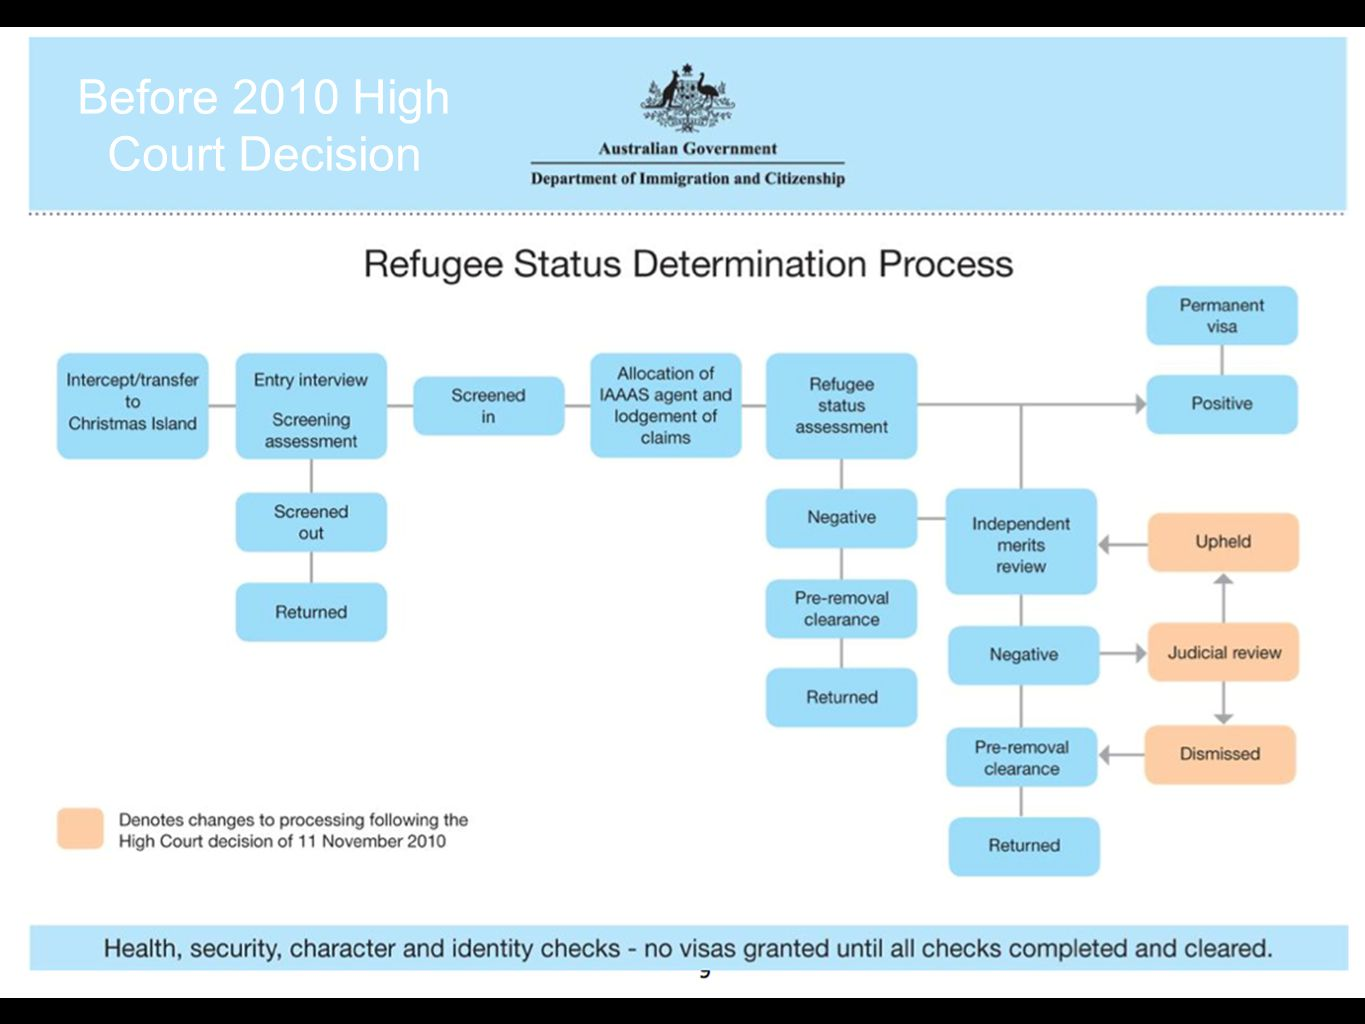 Insert IMMI flowchart HERE! Before 2010 High Court Decision